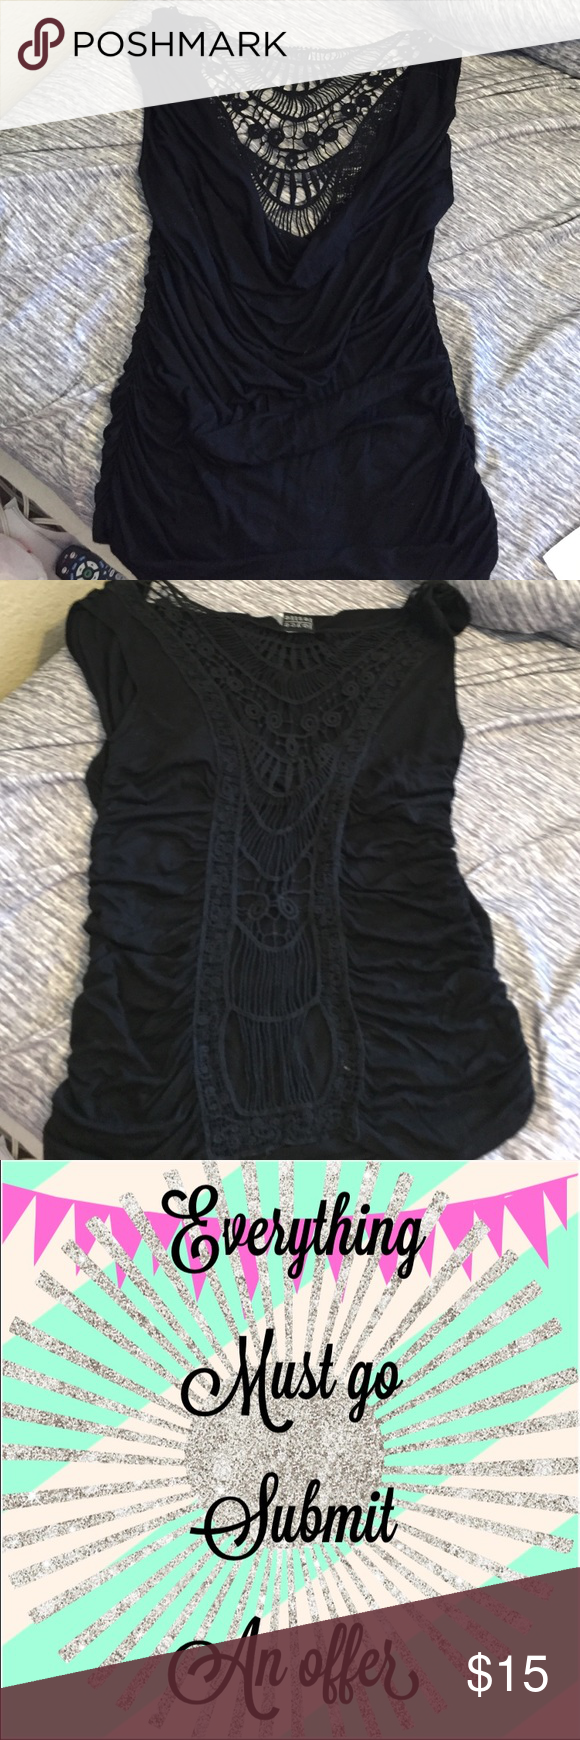 ⭐️ Submit an offer ⭐️ Sexy black top, fabric shows wear Joyce Leslie Tops